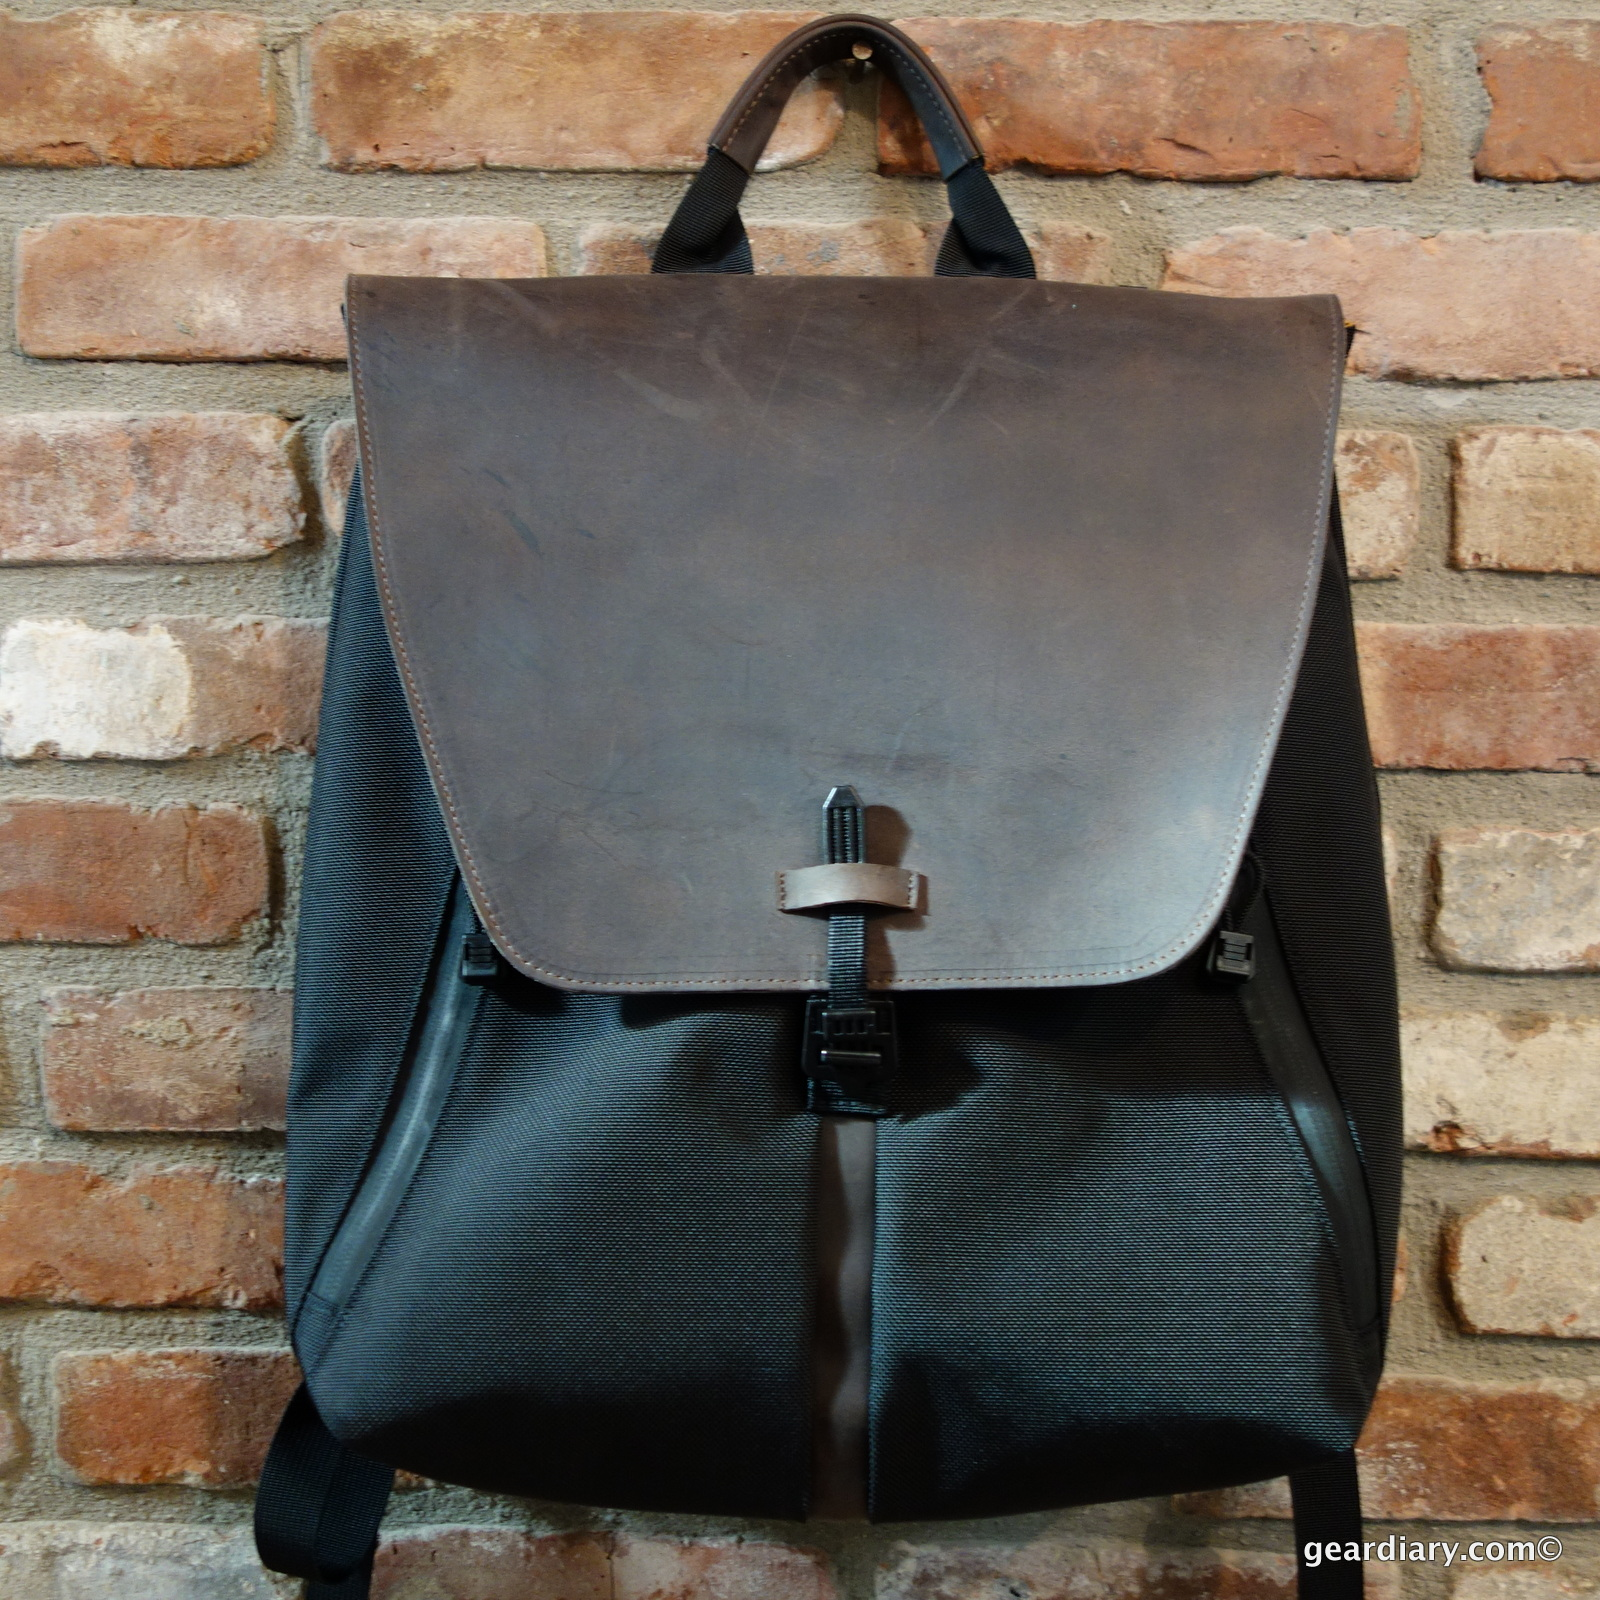 GearDiary The Waterfield Staad Backpack Received and Examined